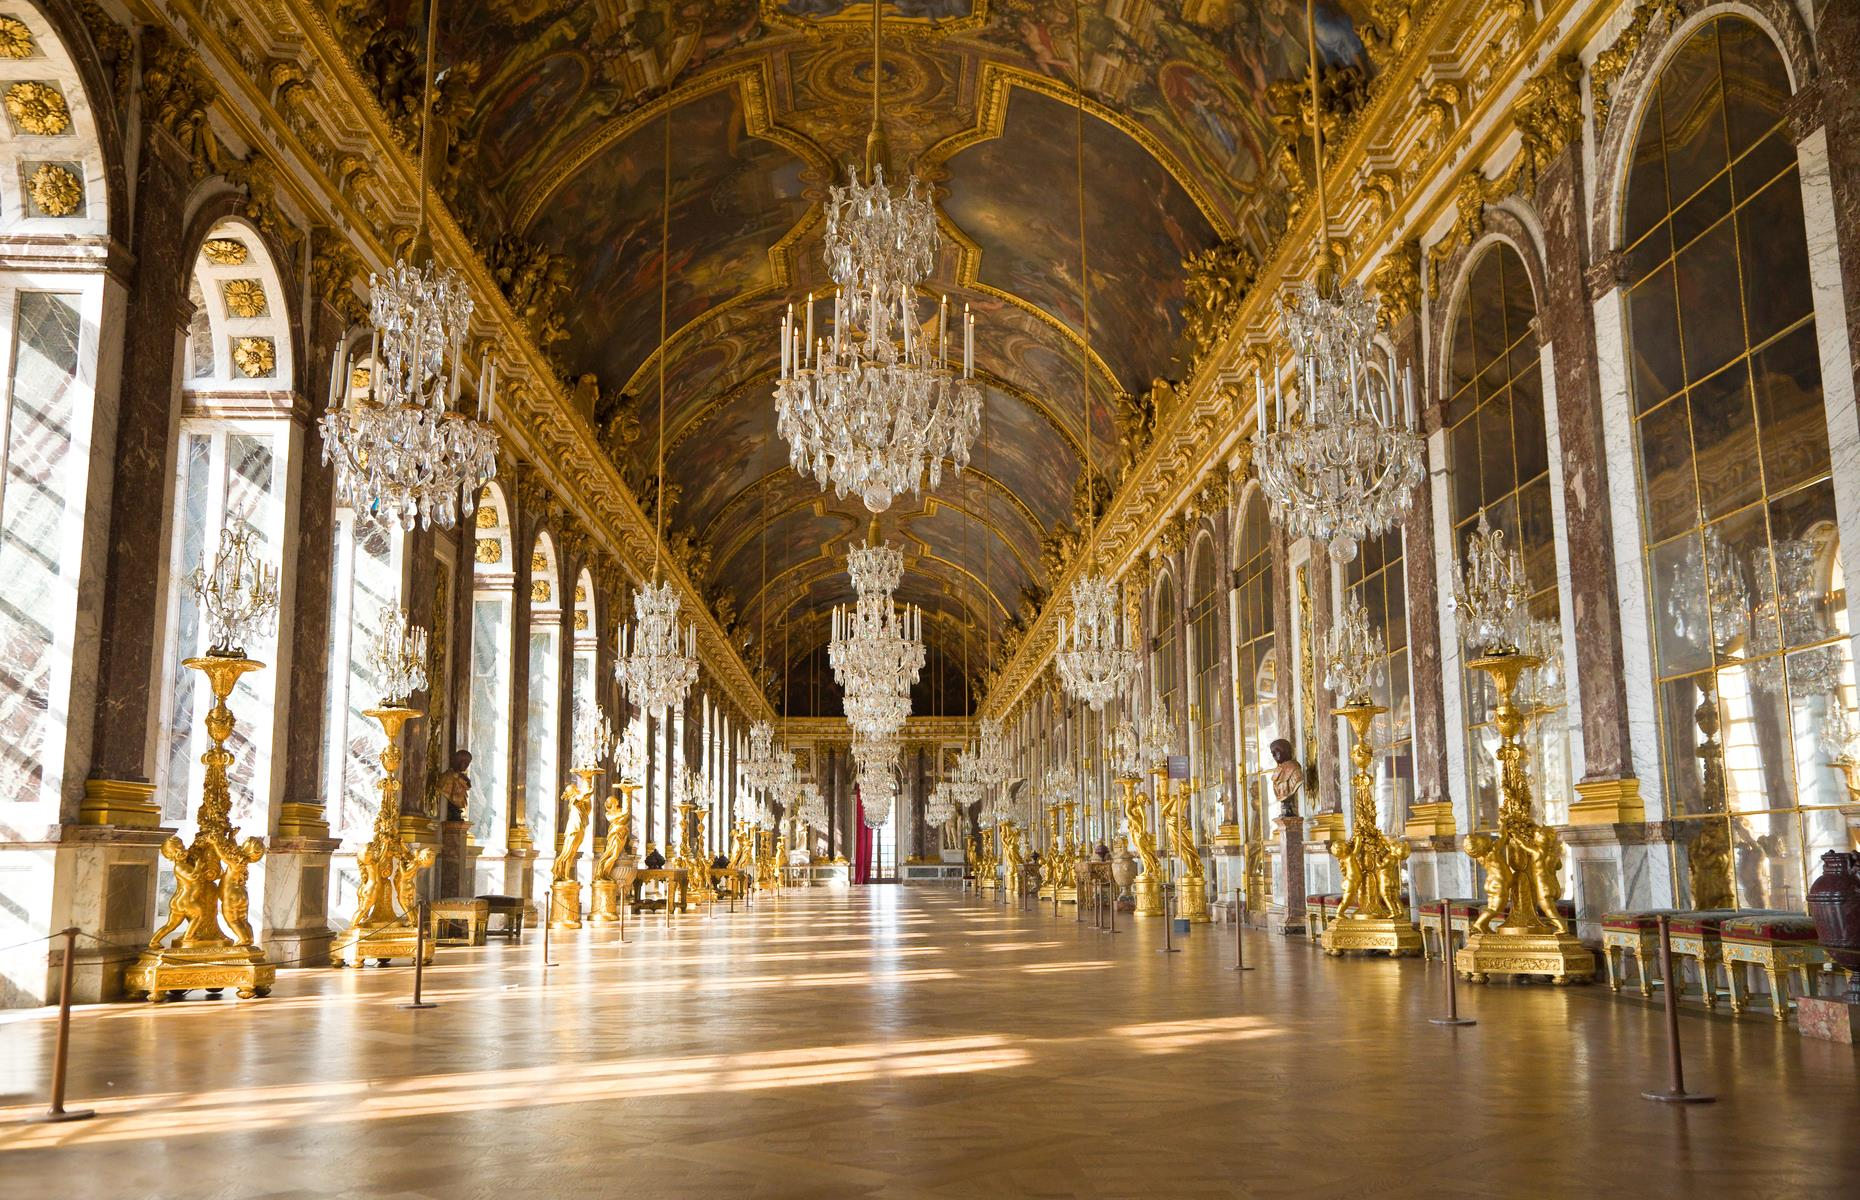 Slide 13 of 53: The interior is so dazzlingly beautiful it's hard to know where to look. Literally so in the Hall of Mirrors, a central gallery that sparkles with chandeliers and is home to around 5,000 pieces of antique furniture and 6,000 priceless paintings.